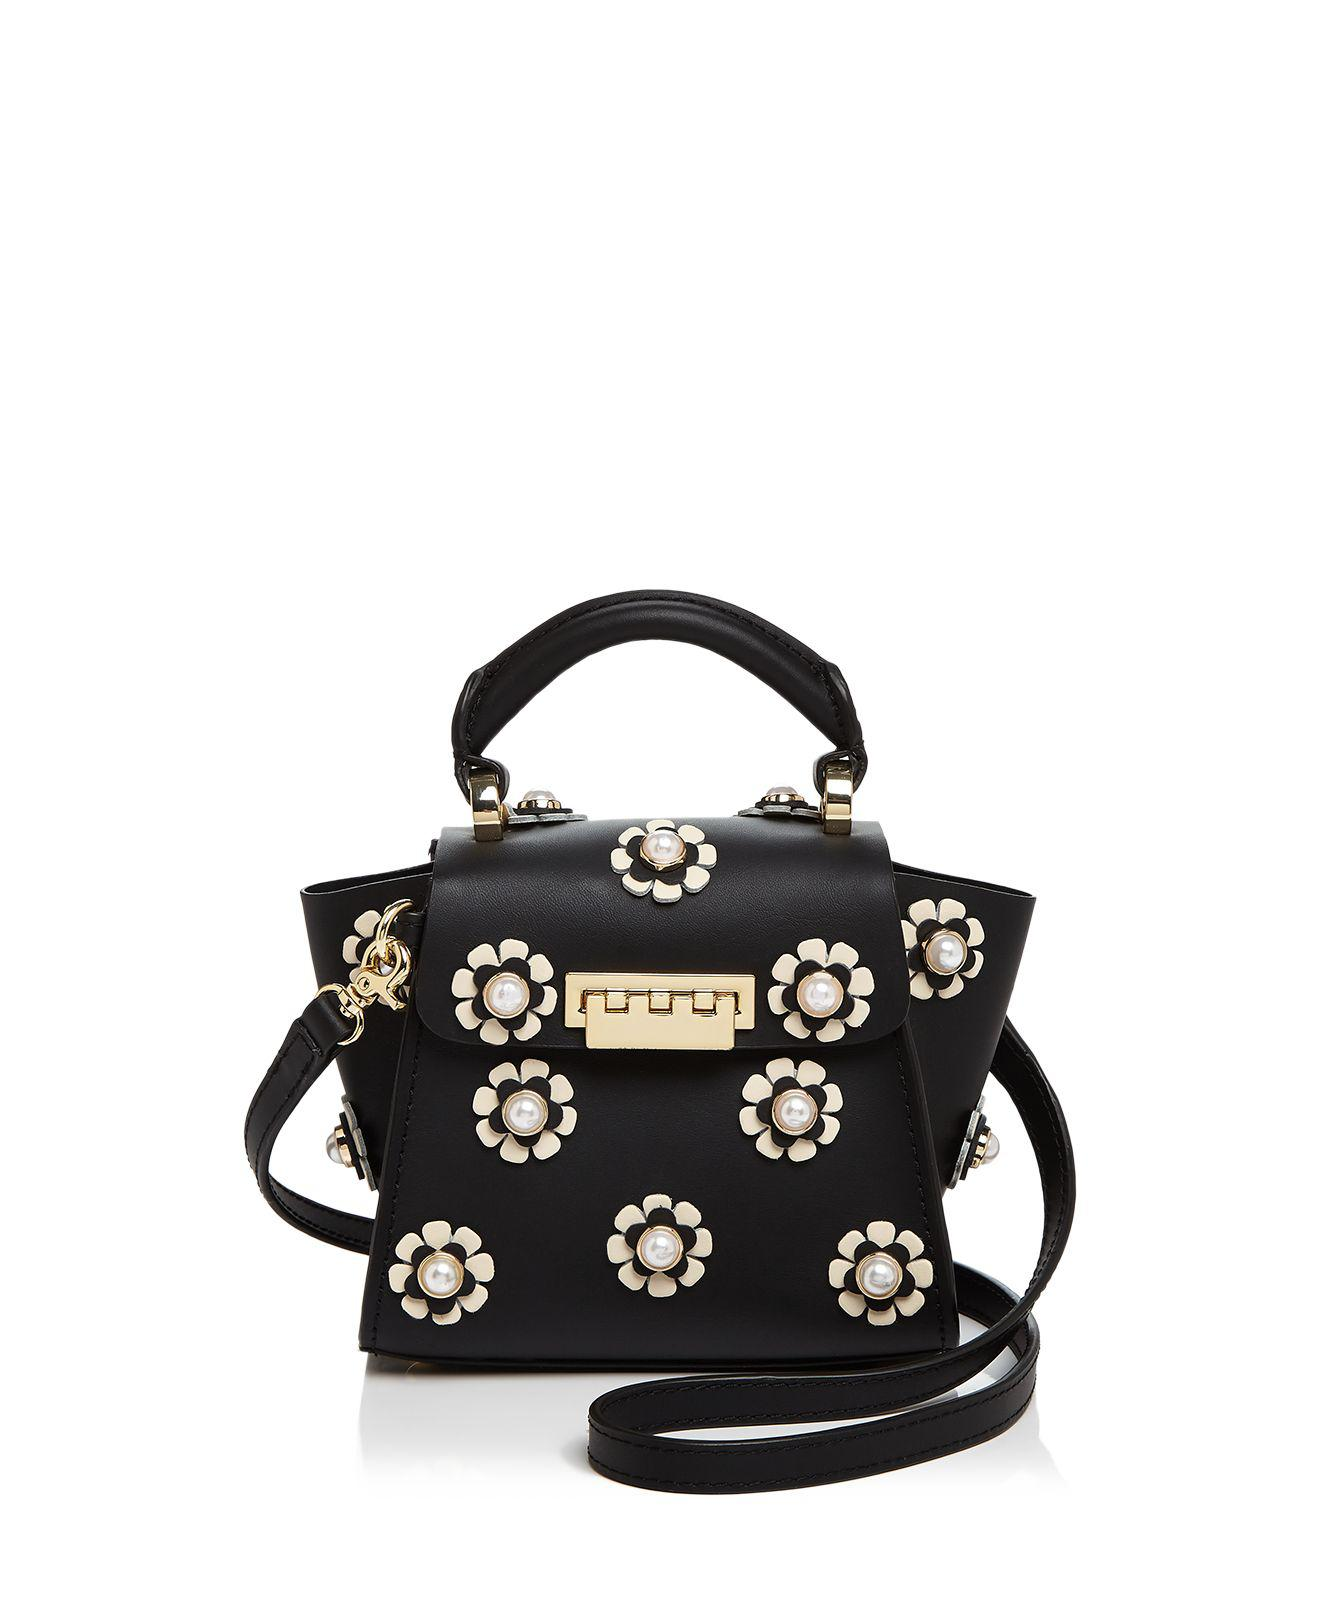 Lyst - Zac Zac Posen Eartha Iconic Faux-pearl Floral Top Handle Mini Leather Crossbody In Black